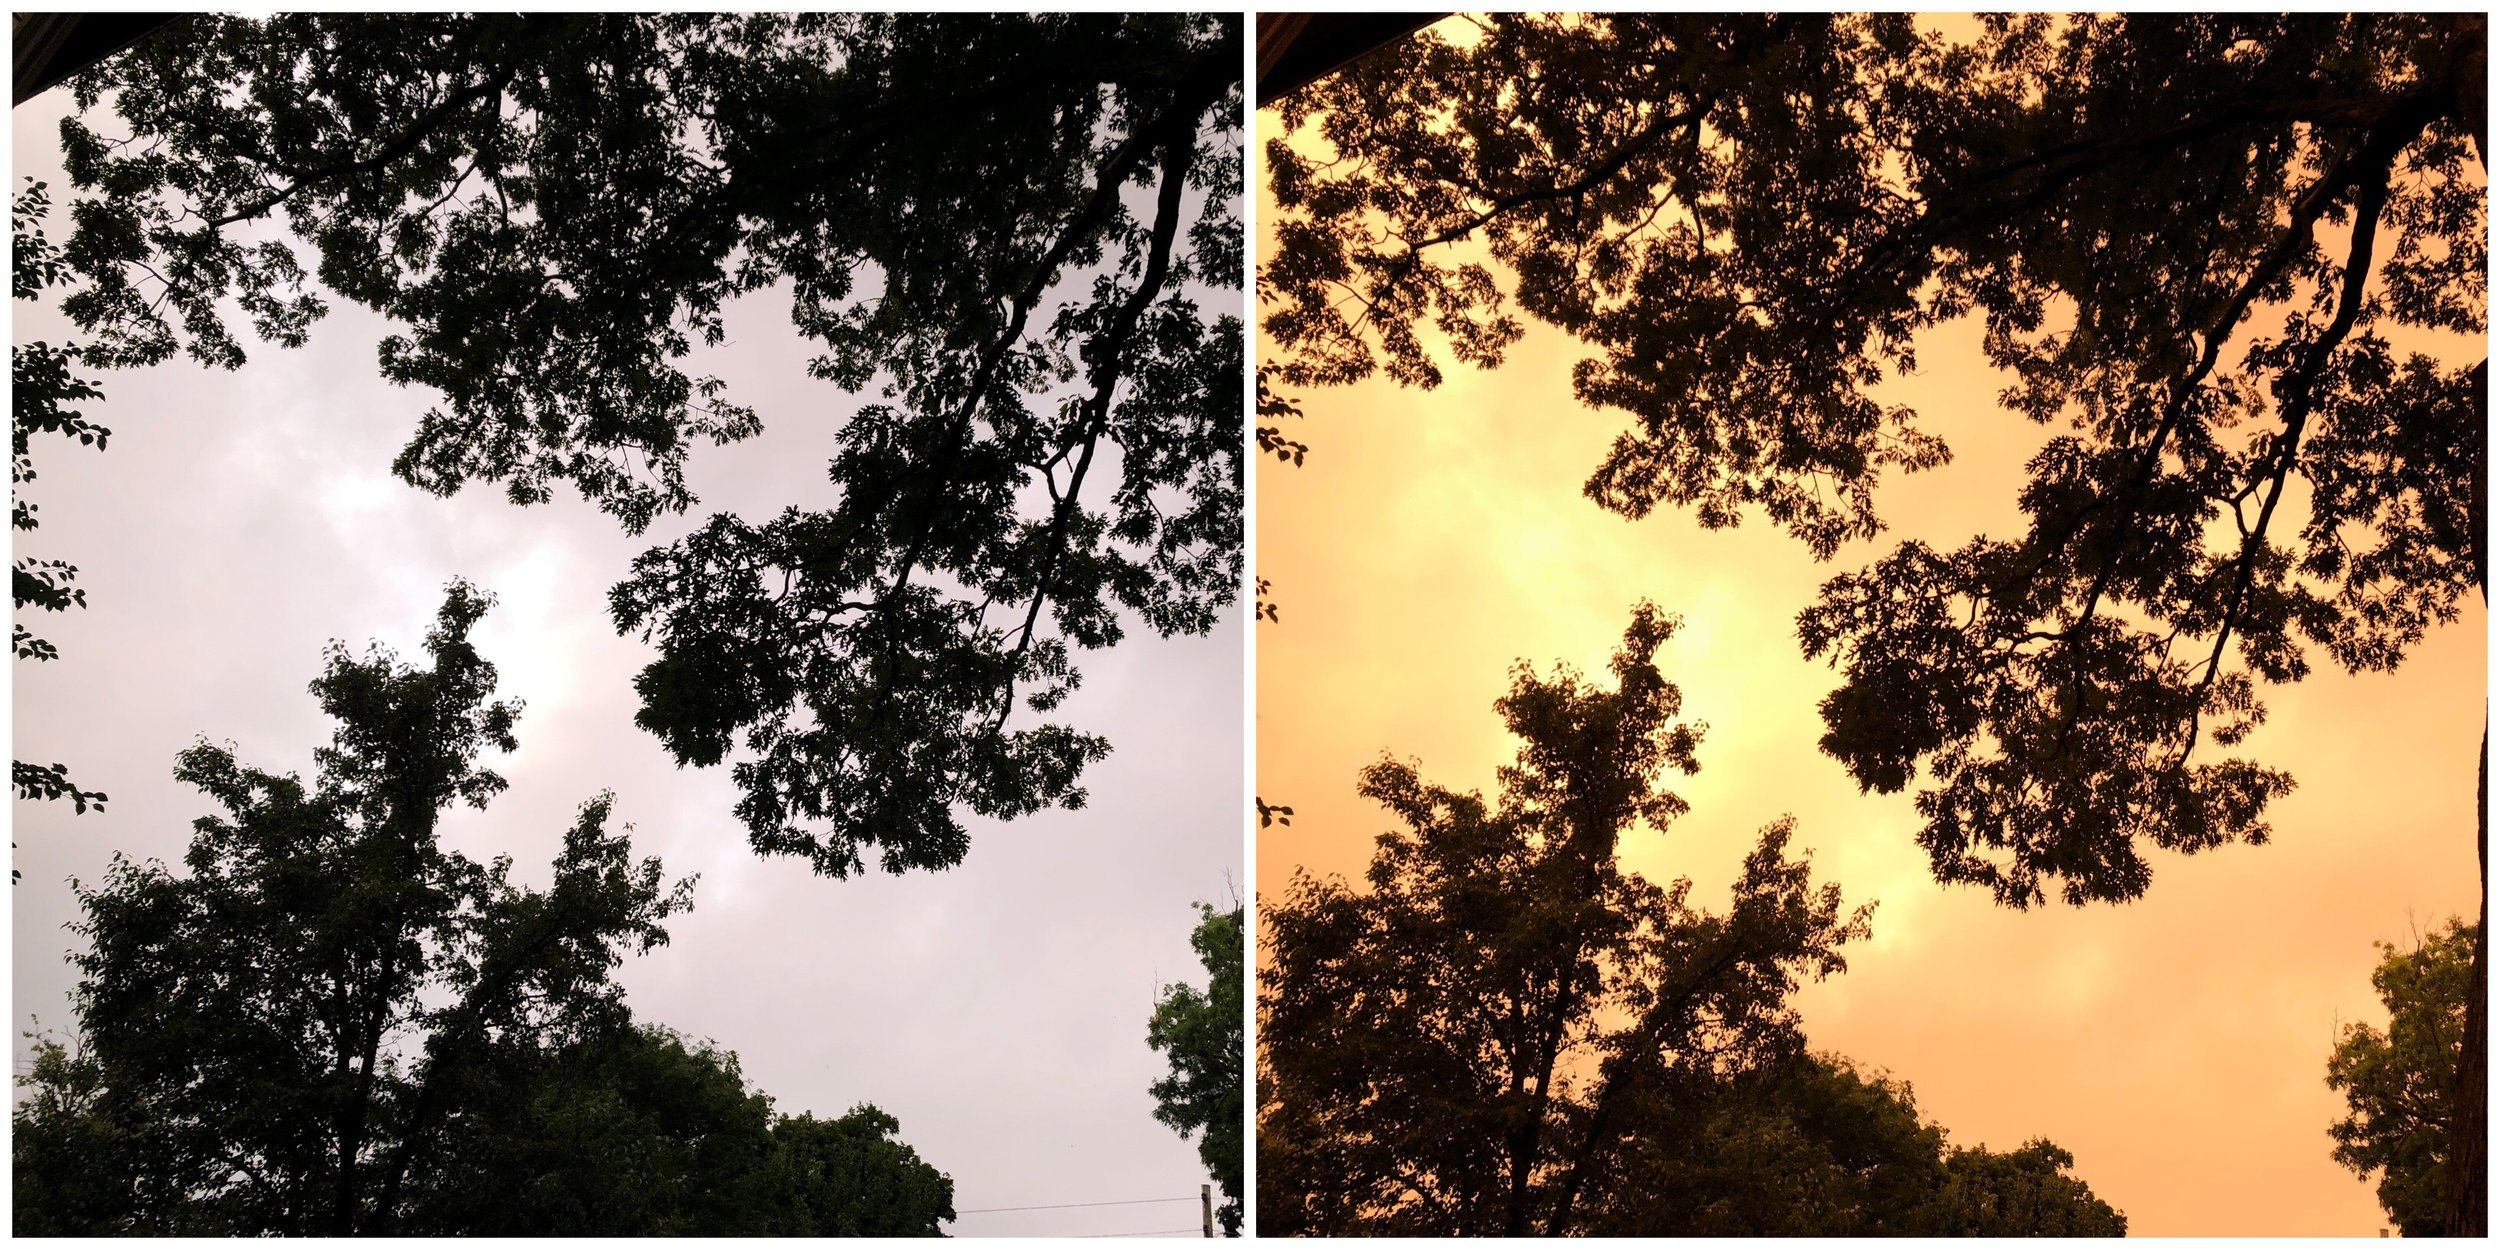 The camera's auto white balance (left) compared to what the sky looked like with adjusted white balance (right).